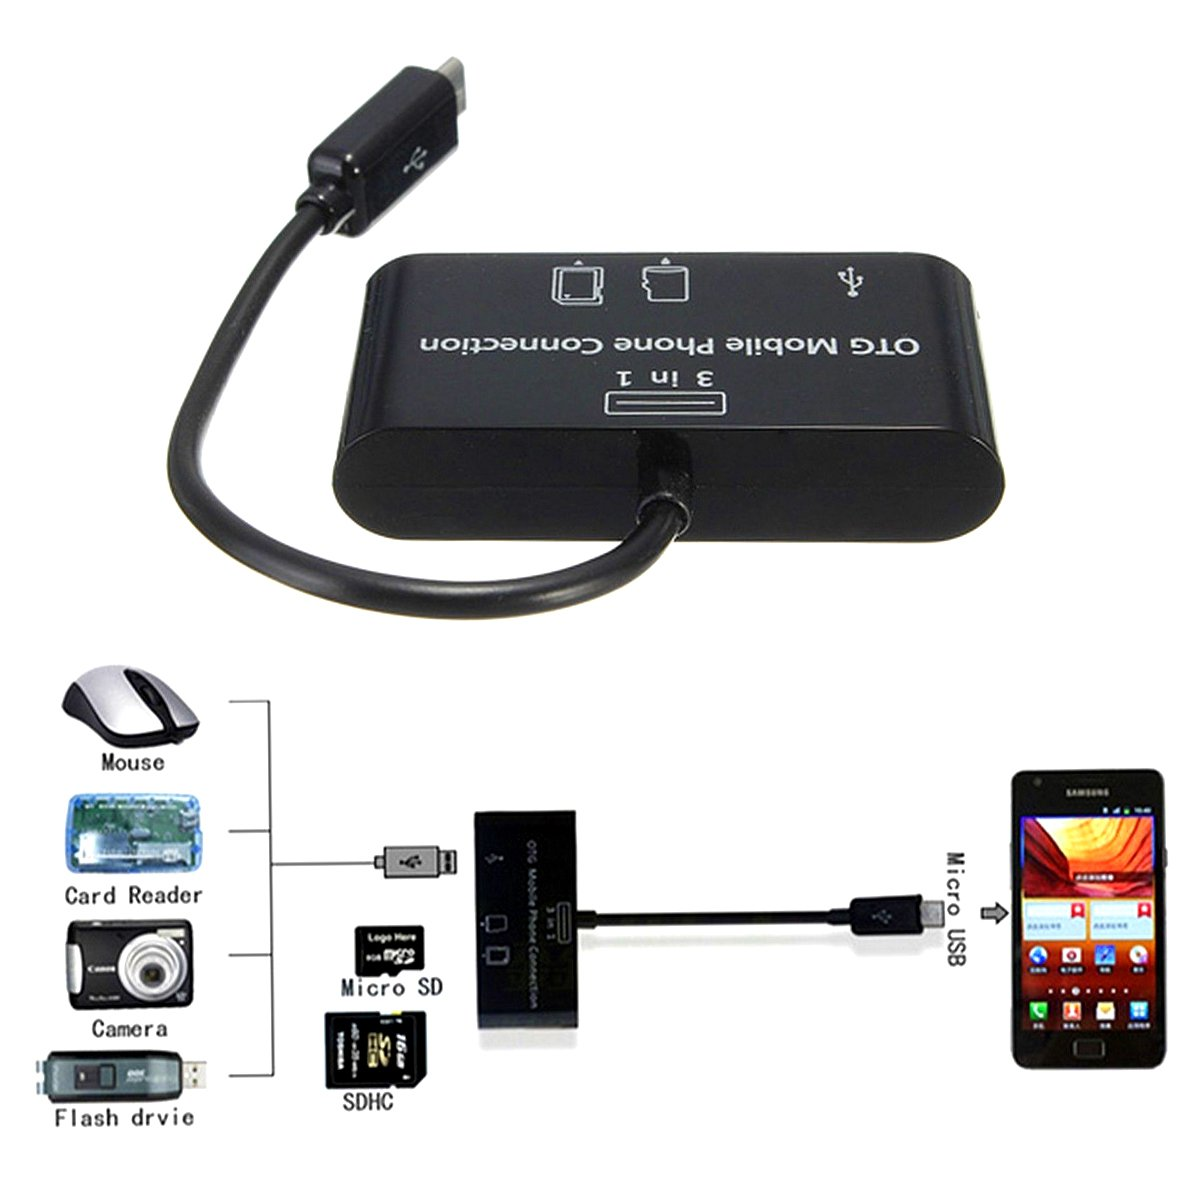 Card Reader Camera Viewer USB Hub 3 in 1 Smart OTG Mobile Phone Connection, Reads & Writes SD and Micro SD Card for Android OTG Mobile phones/Laptop/Desktop